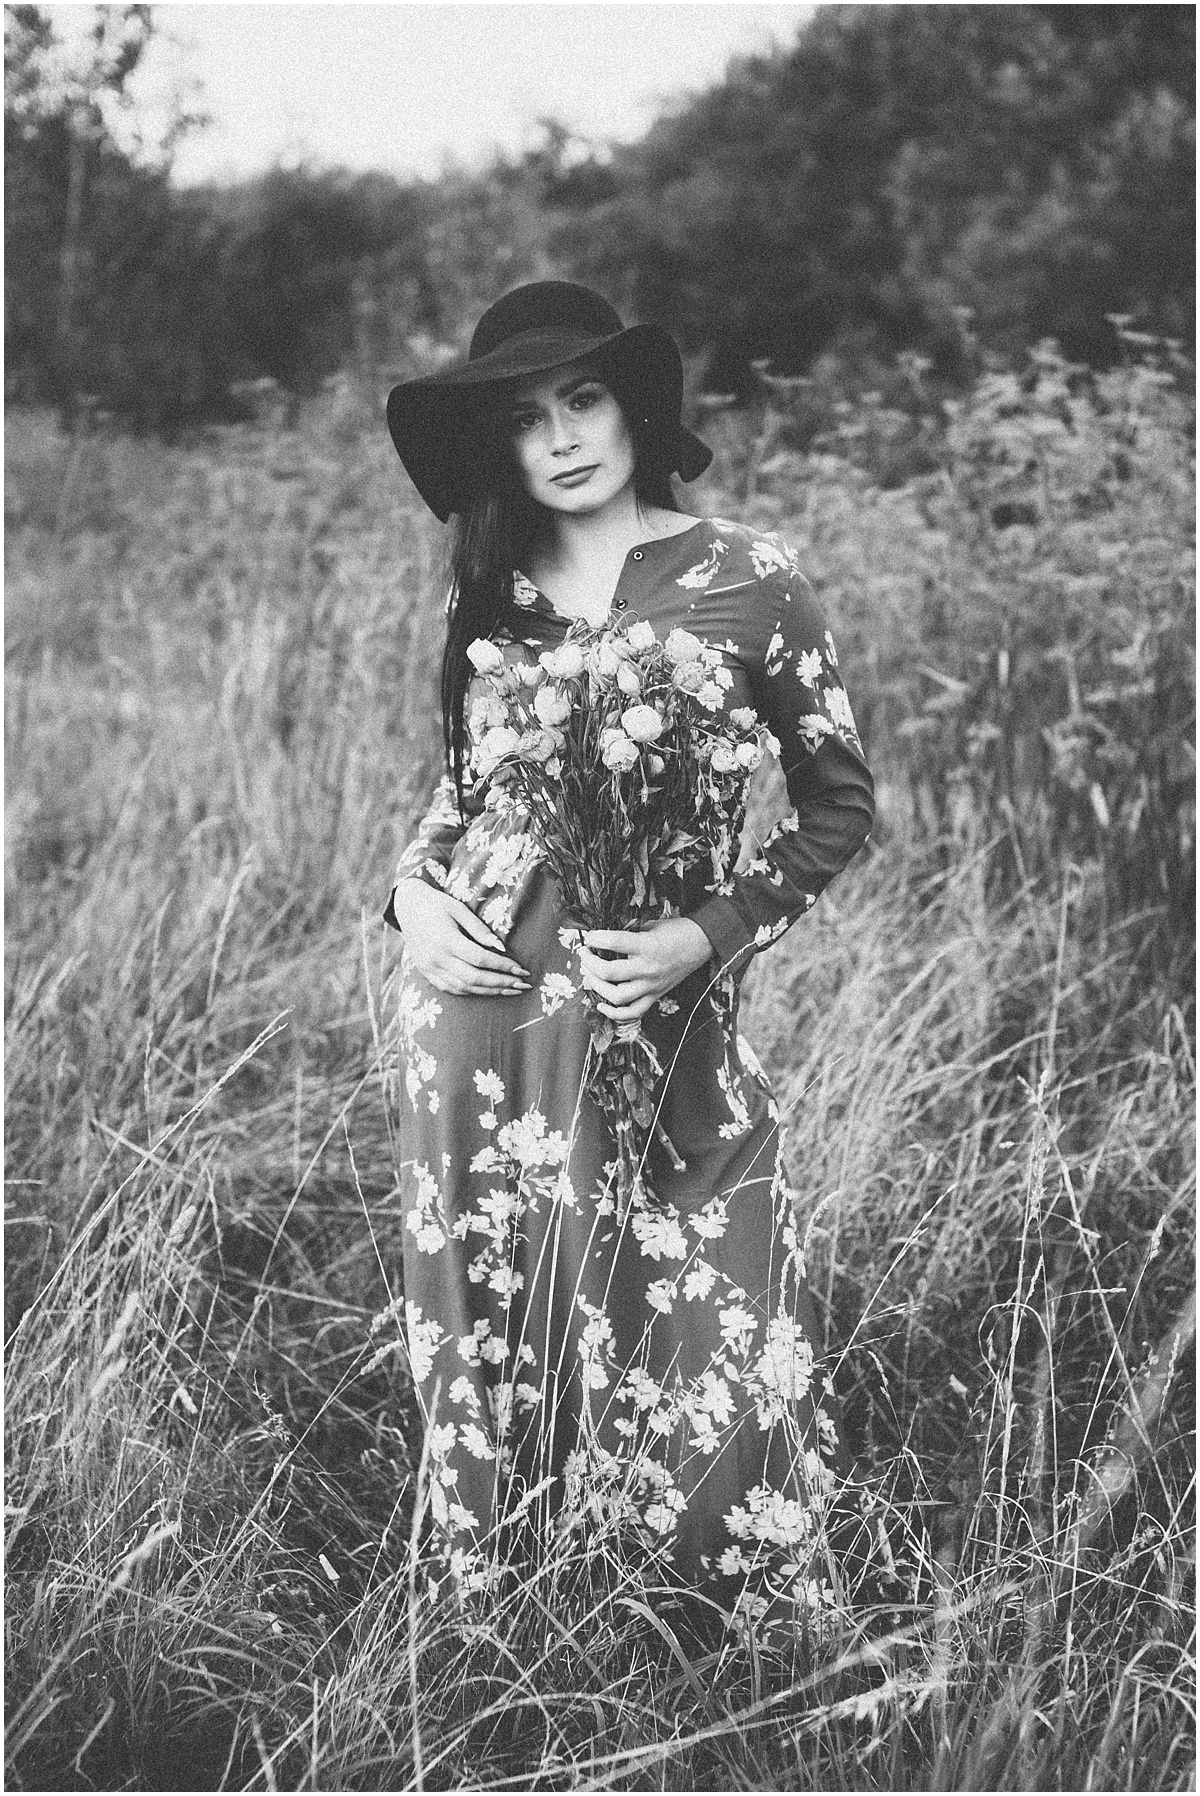 black & white photo of woam in a field of overgrown grass